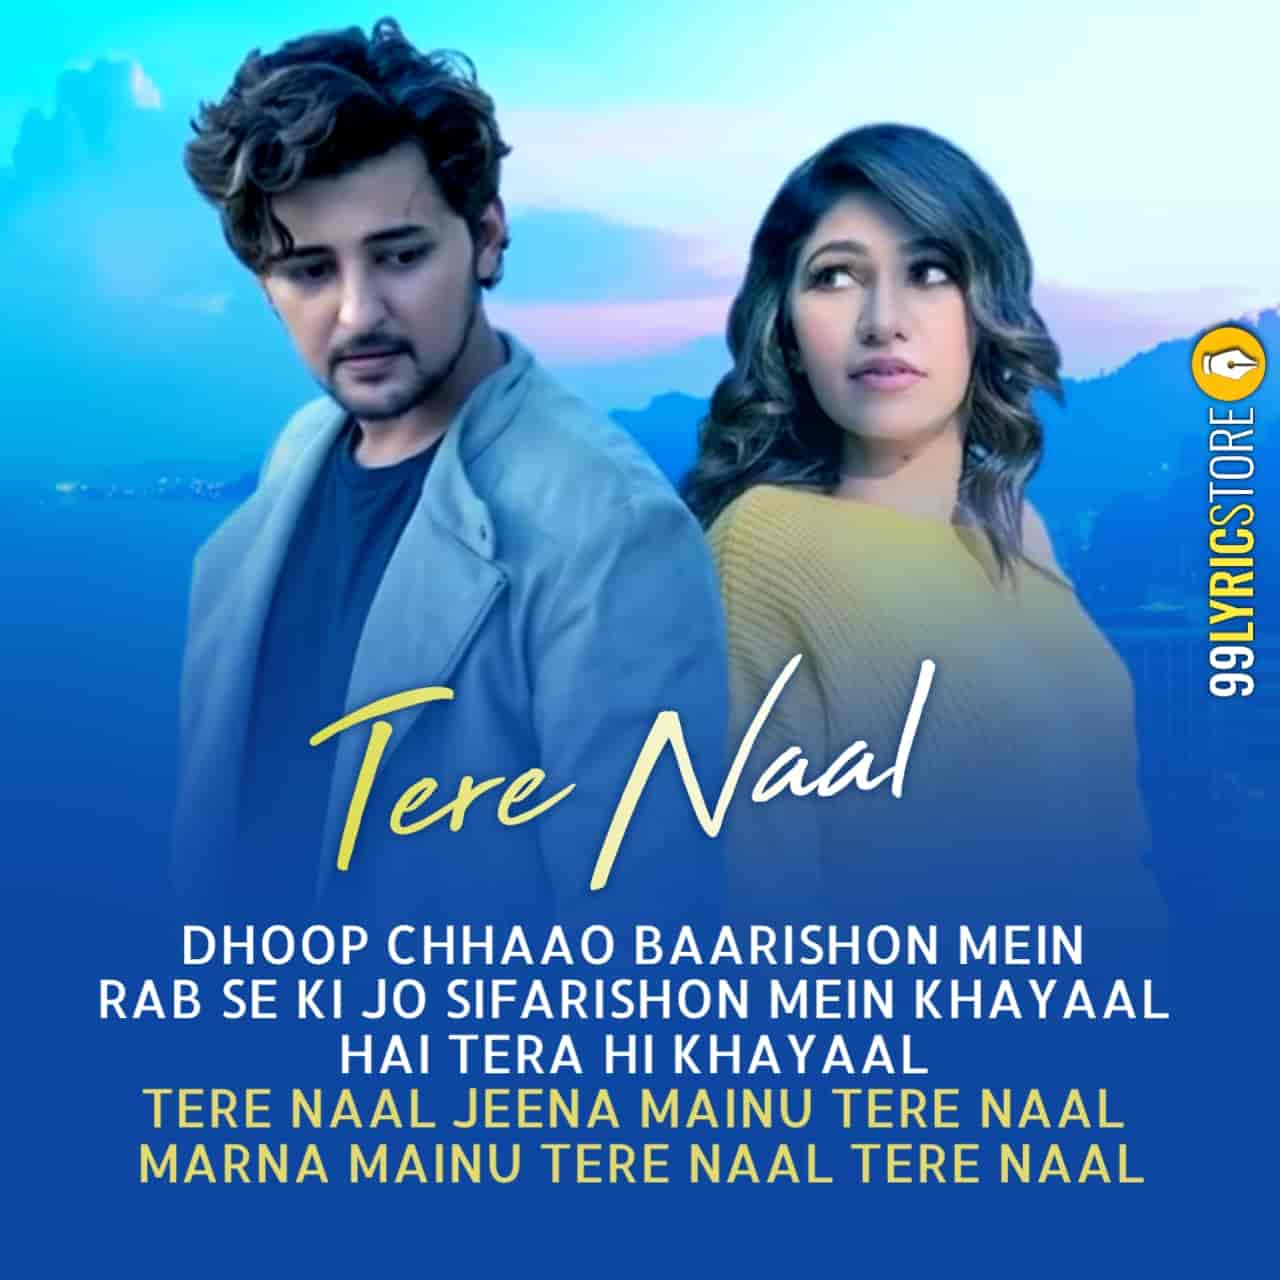 Tere Naal Song Image Features Darshan Raval and Tulsi Kumar